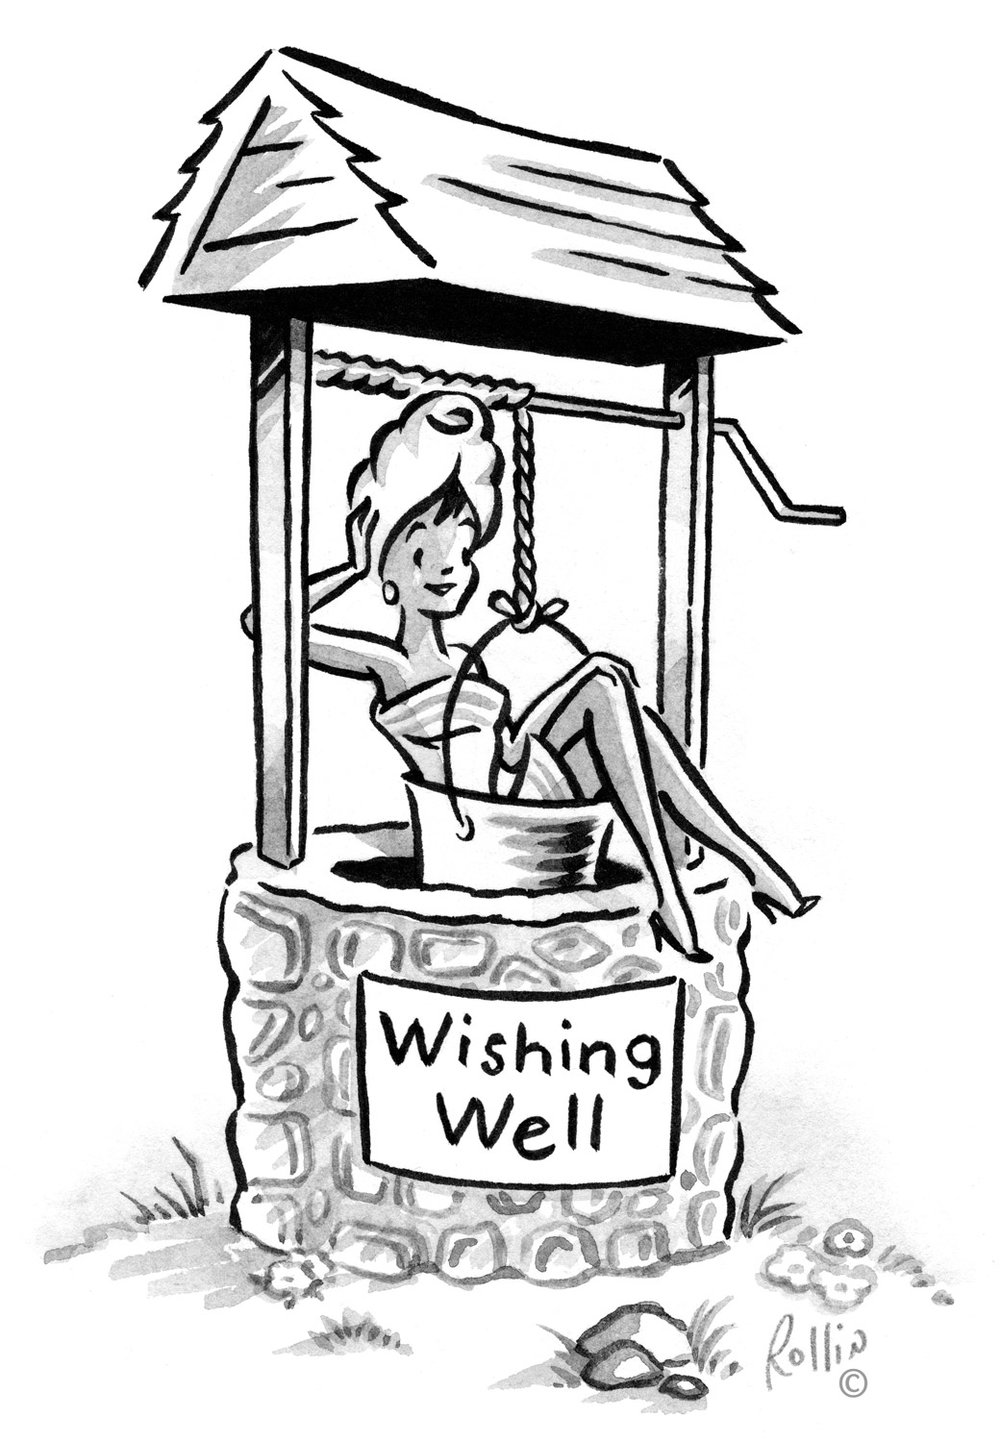 Dr M-Wishing Well-web 1500.jpg